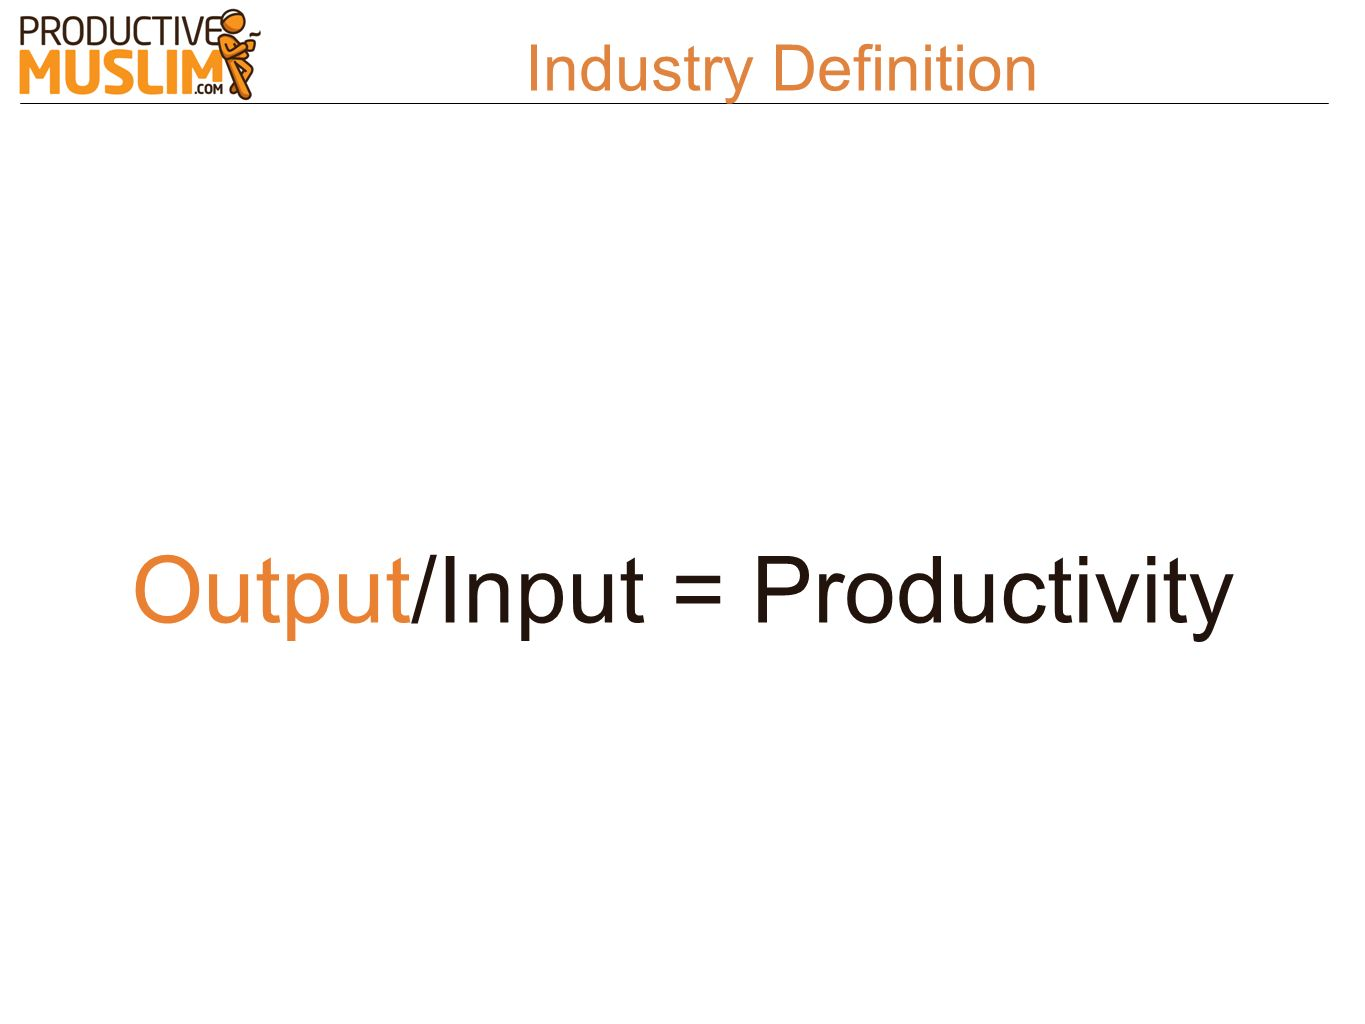 Output/Input = Productivity